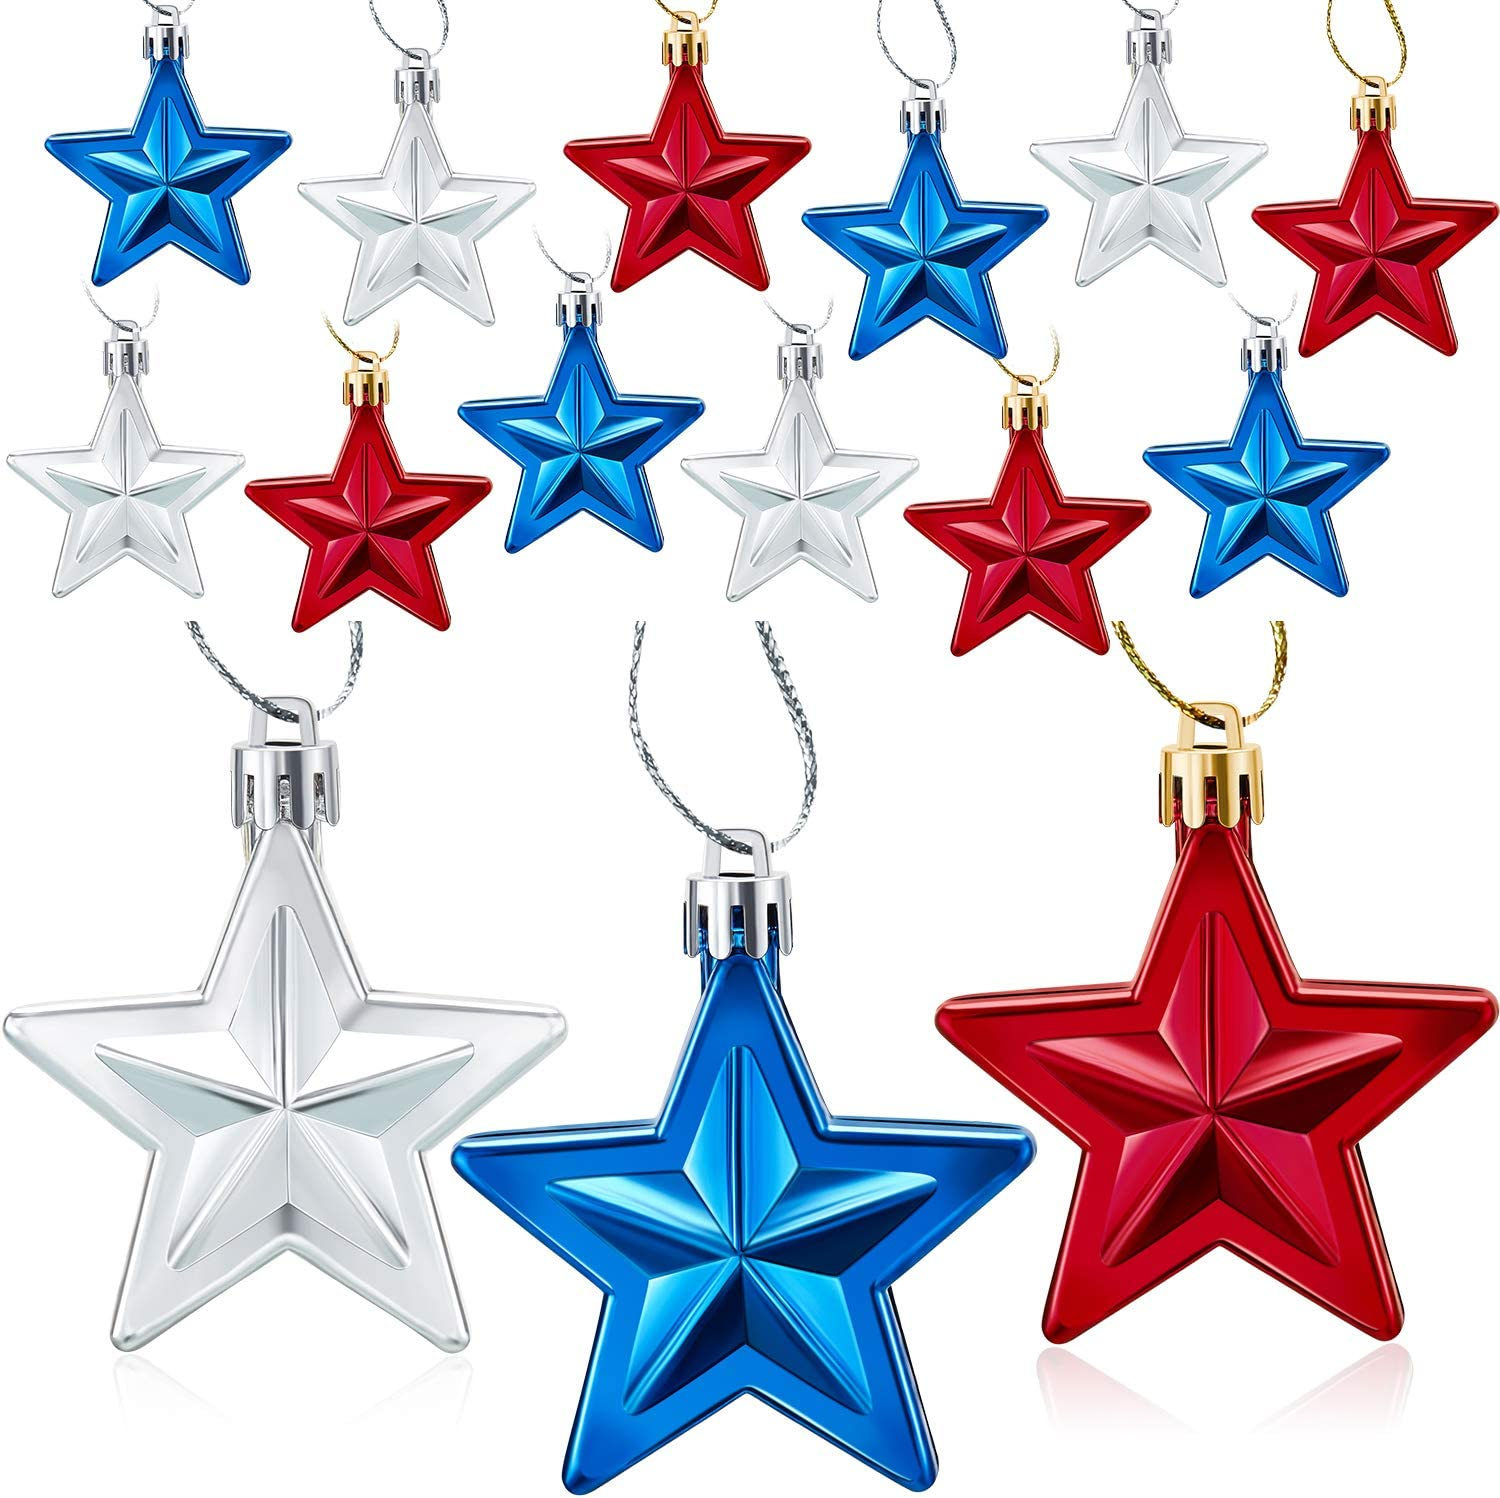 Boao 18 Pieces Hanging Star Flag Day Ornament Hanging Ornaments Patriotic 4th Of July Hanging Decorations For Indoor Outdoor Independence Day Labor Day Party Decor Blue Red And Silver Furniture Decor